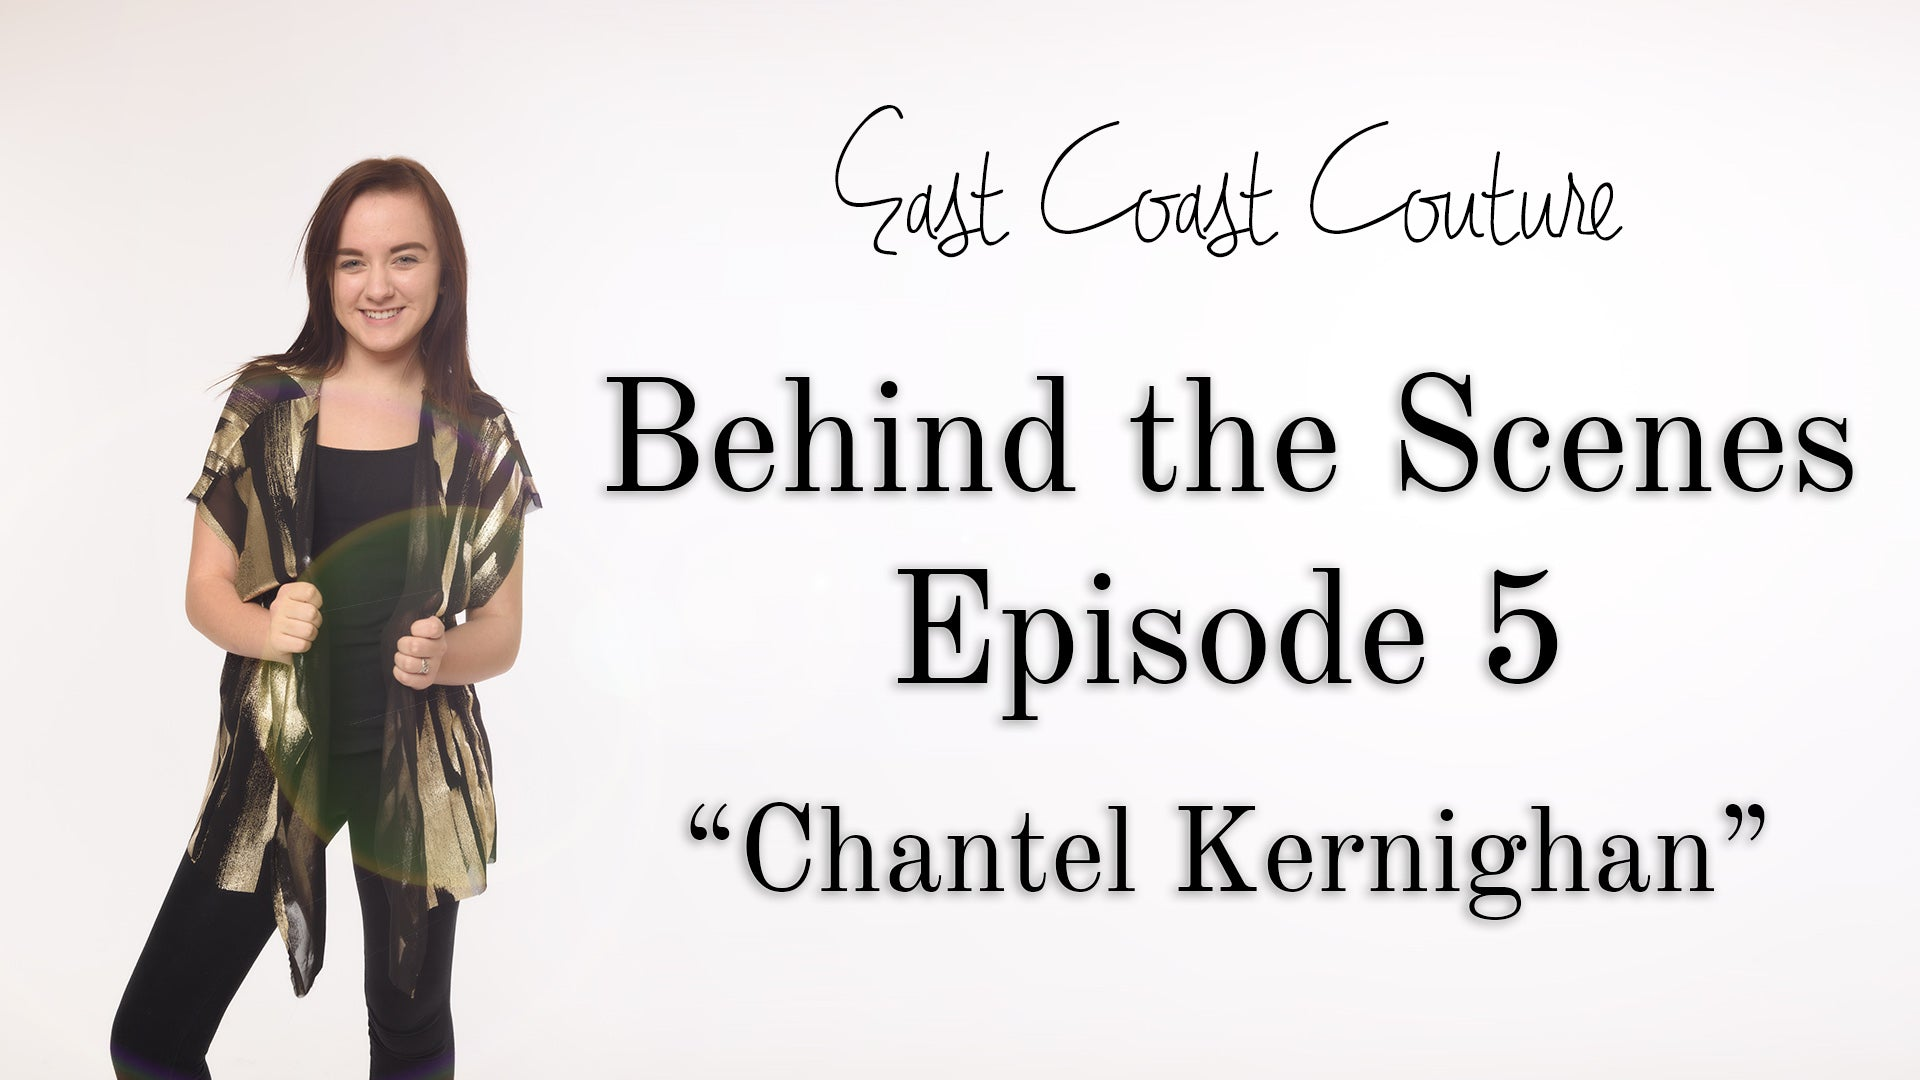 Behind the Scenes Episode 5 - Chantel Kernighan